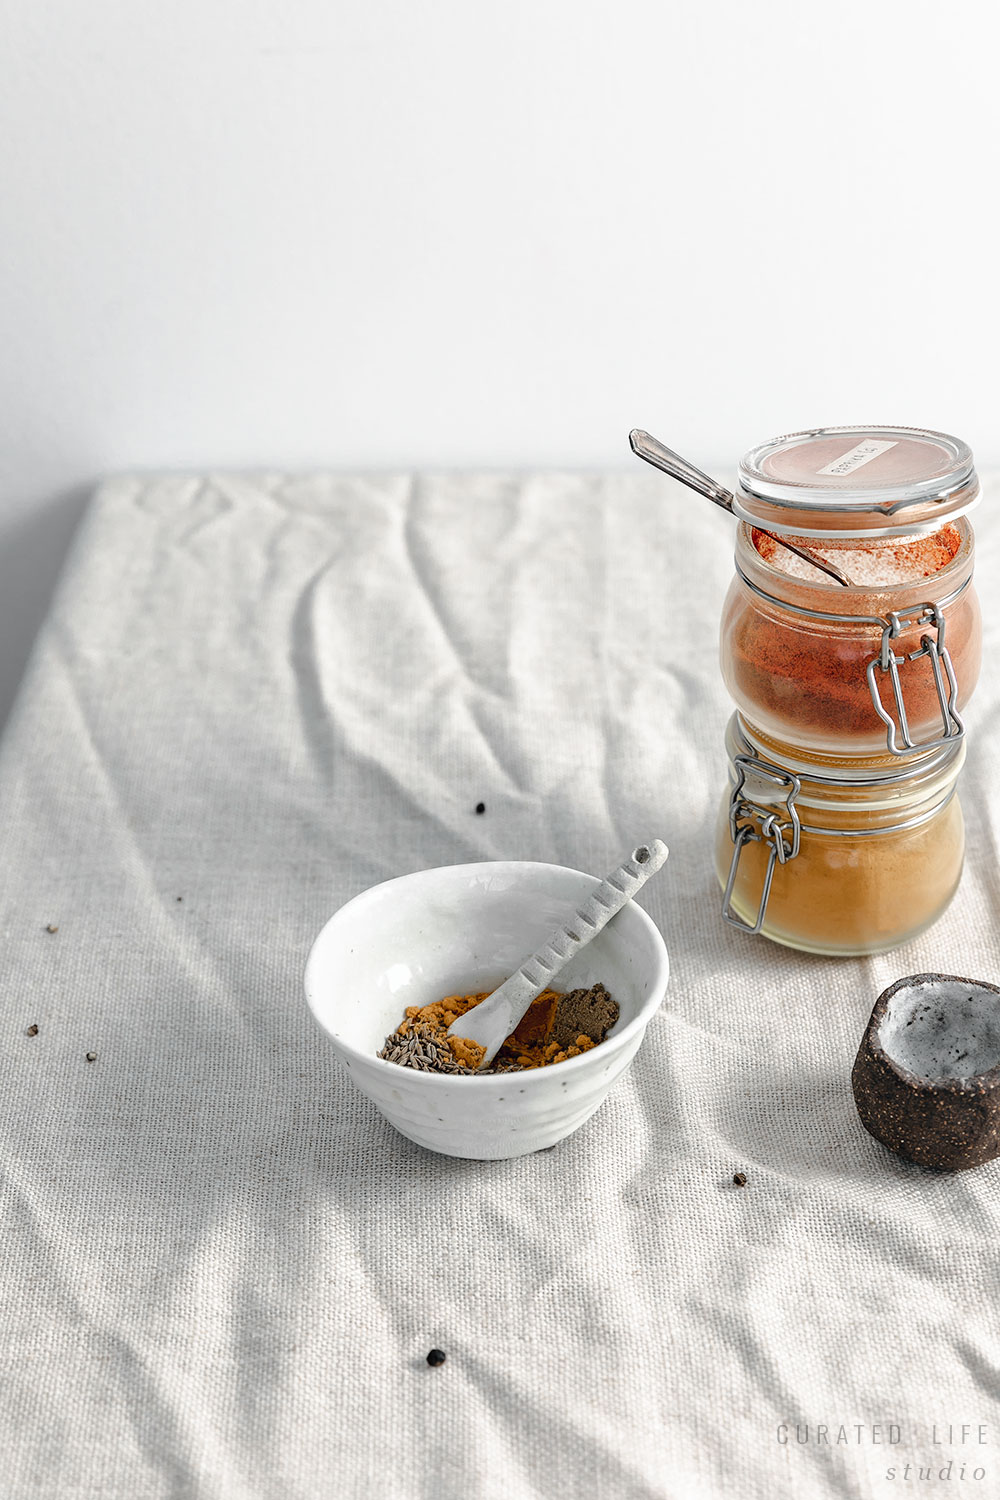 Spices in a small jar